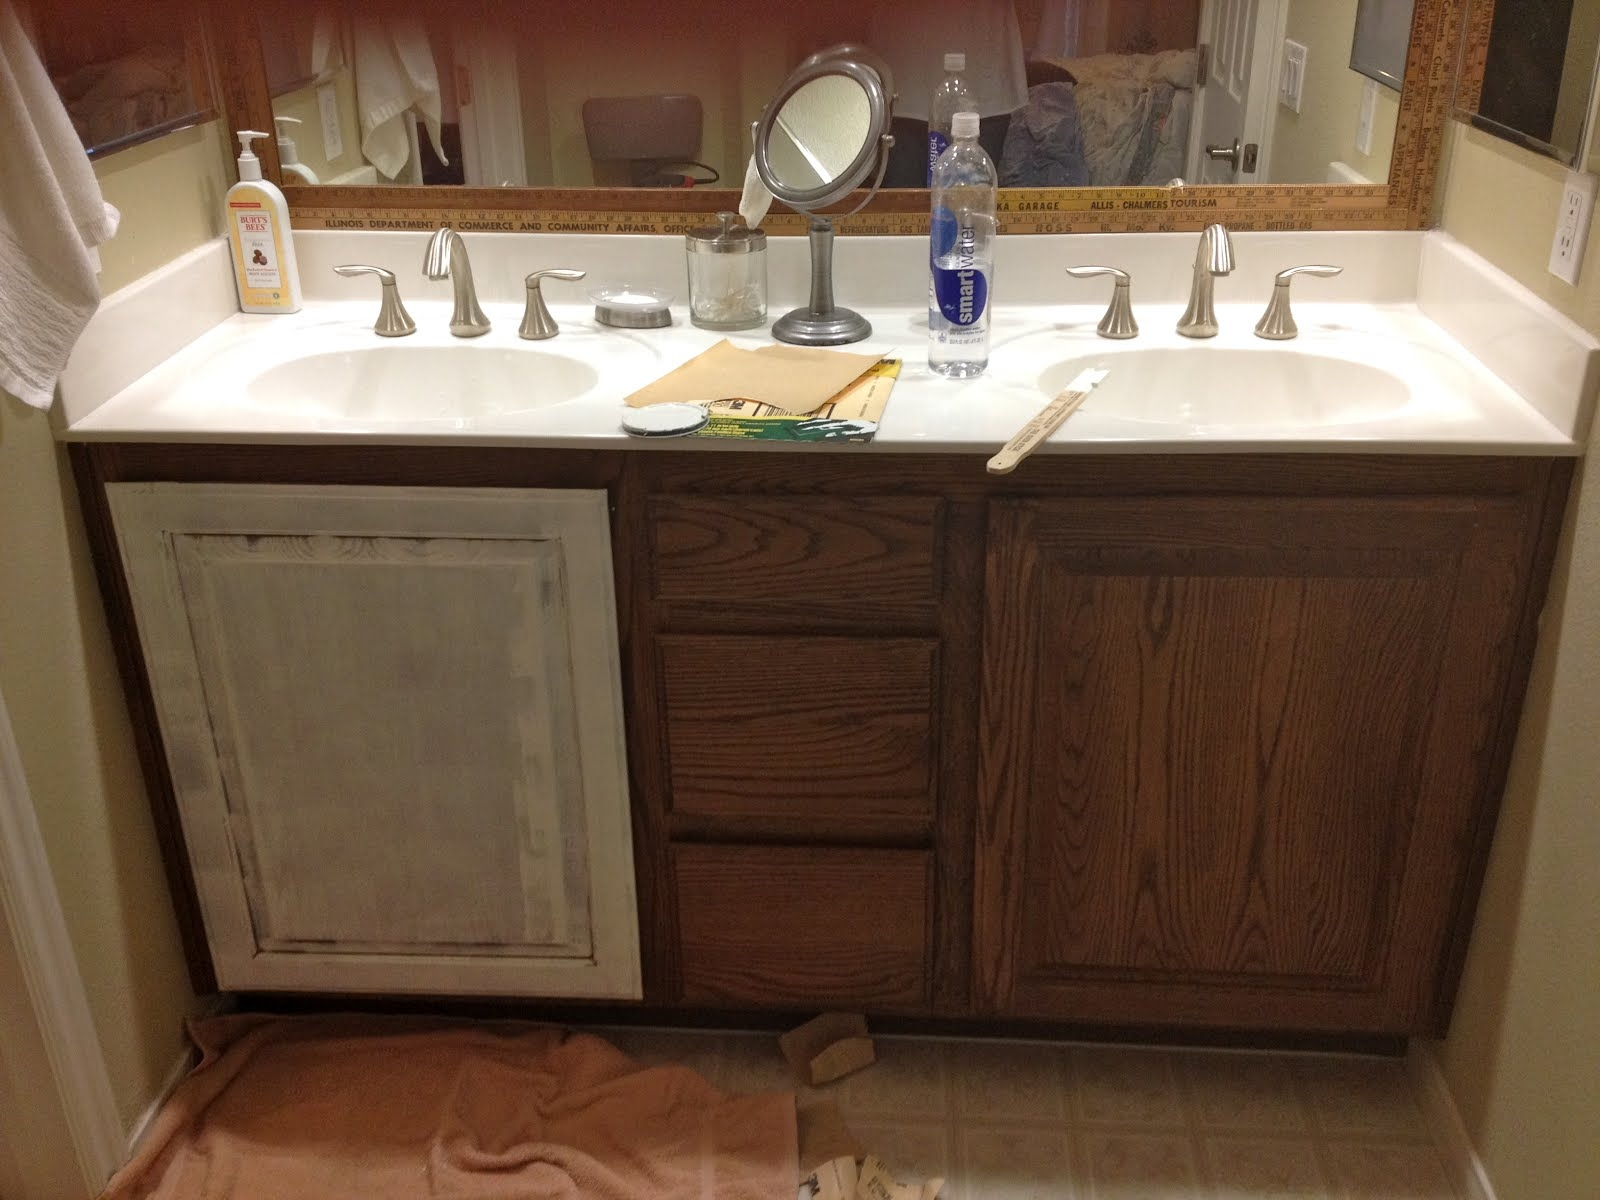 Reface Bathroom Cabinets Do It Yourself